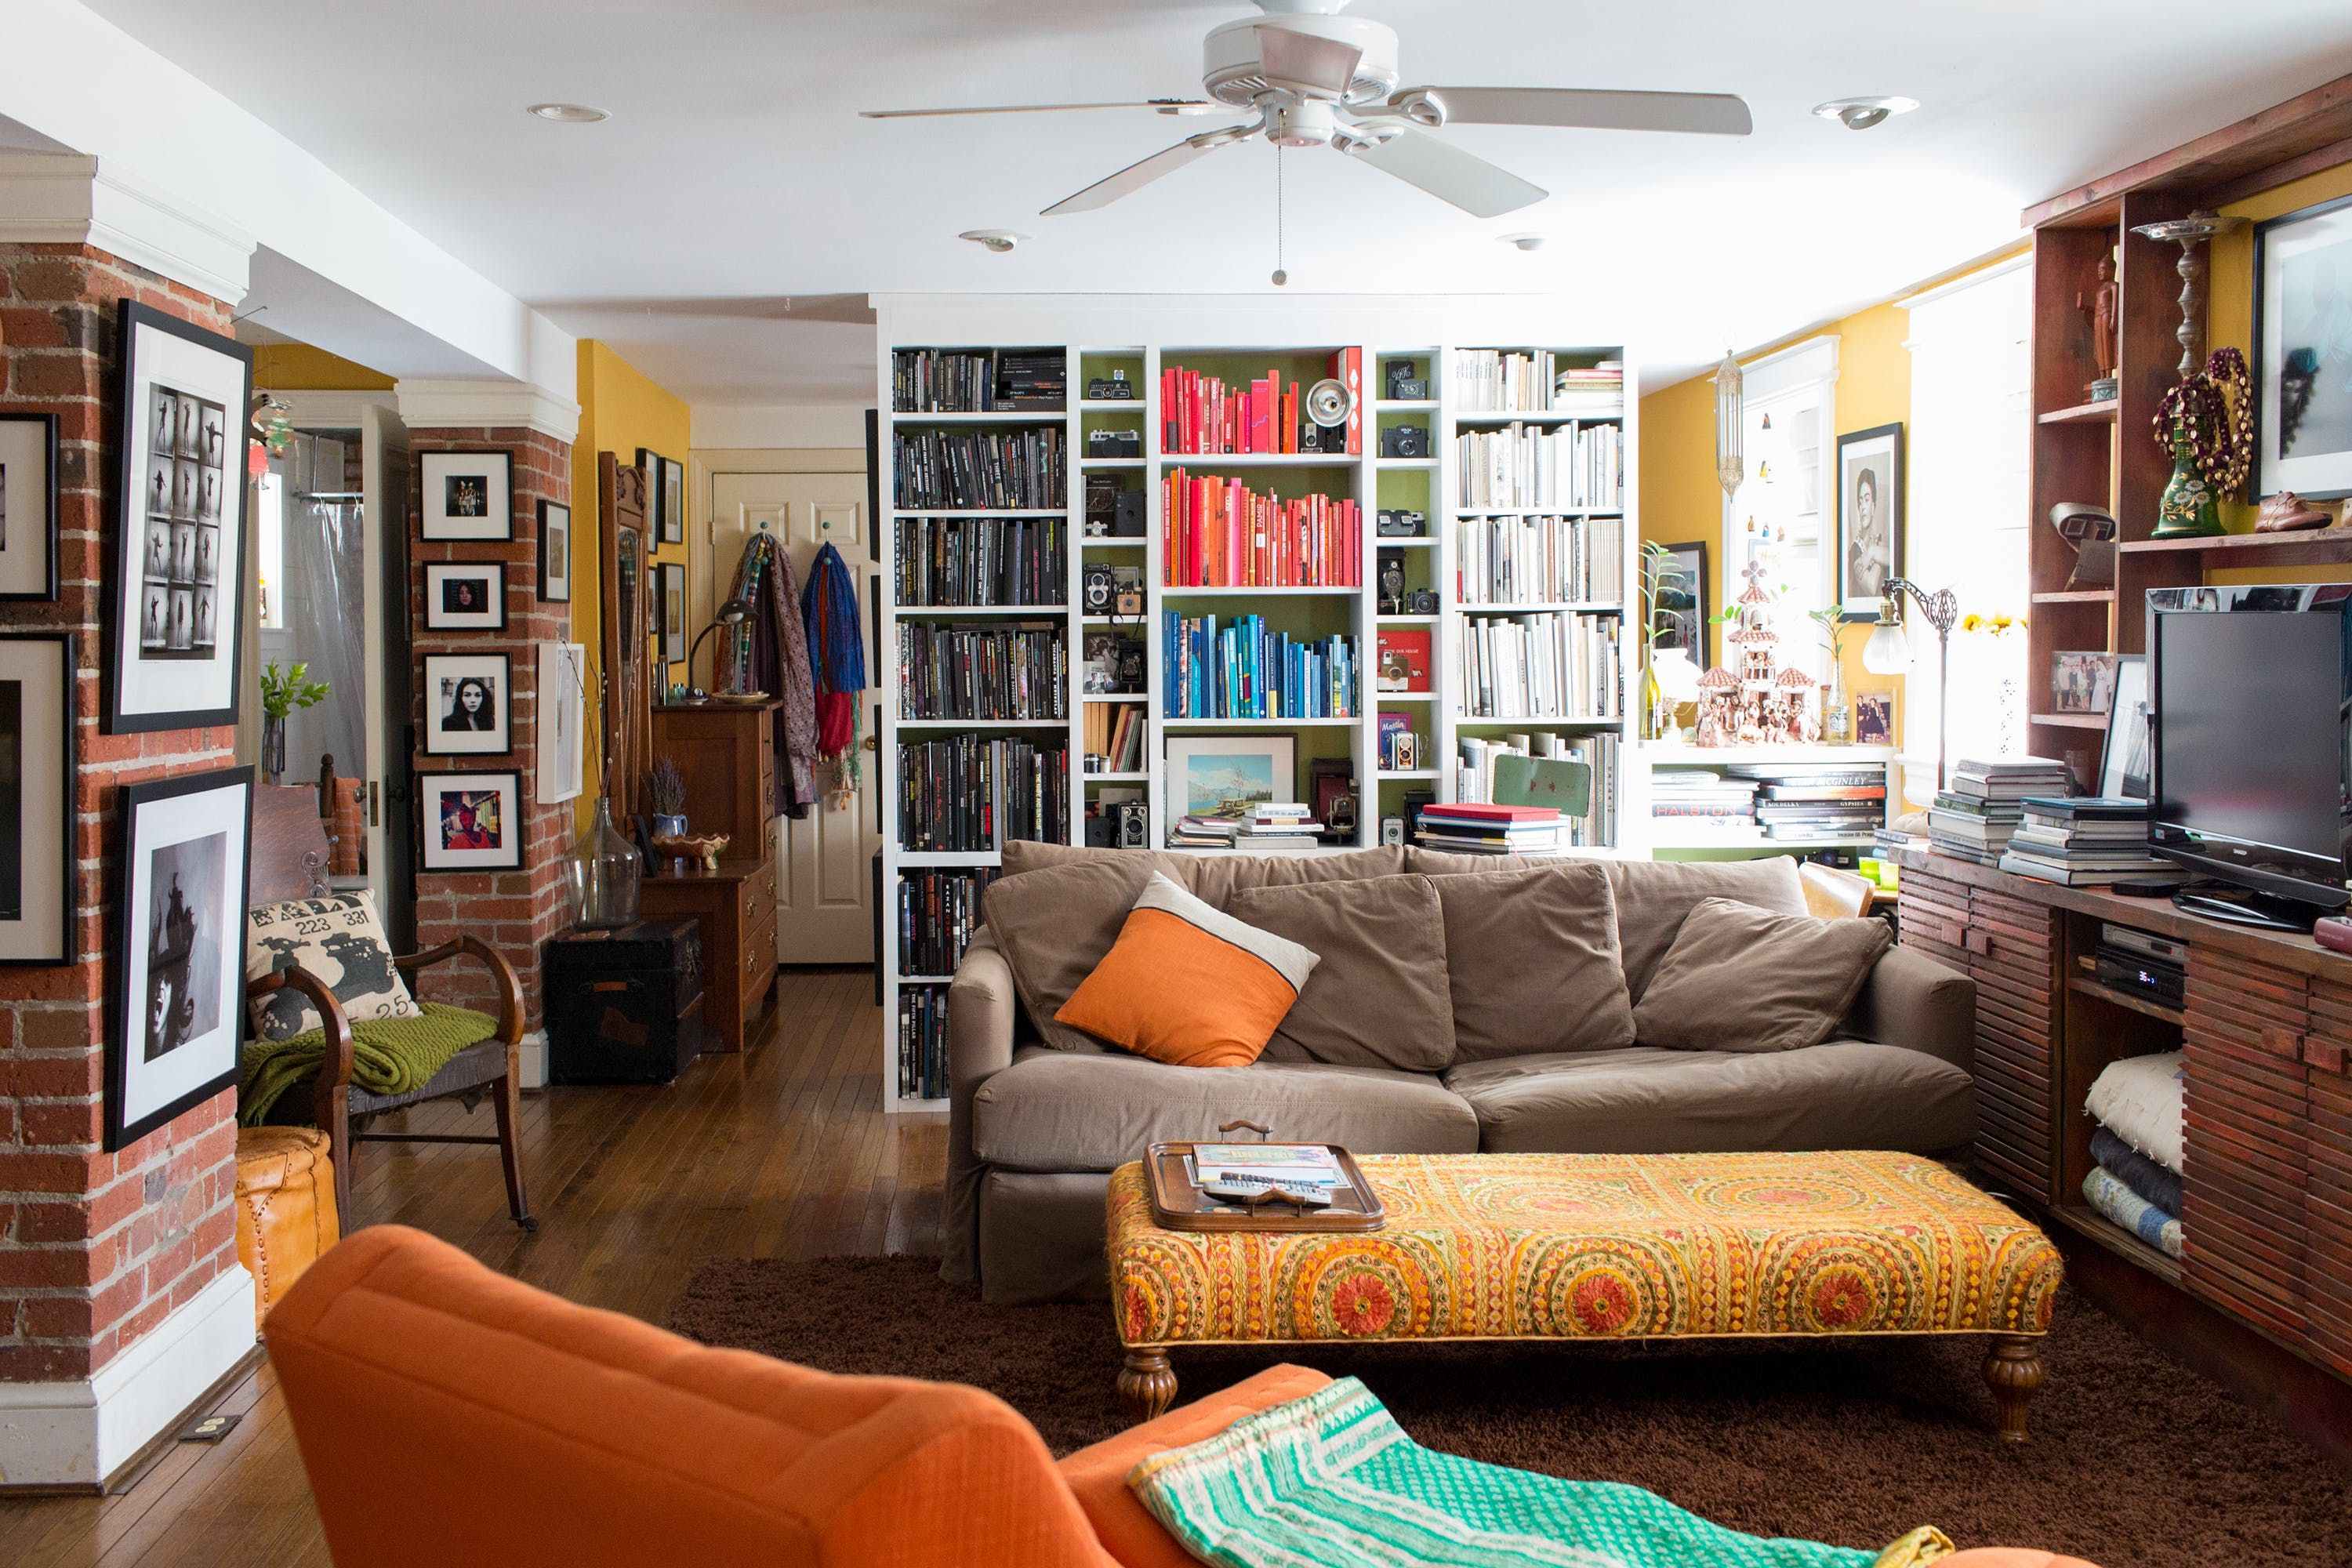 A rainbow hued dc home inspired by frida kahlo ottomans a rainbow hued dc home inspired by frida kahlo geotapseo Image collections